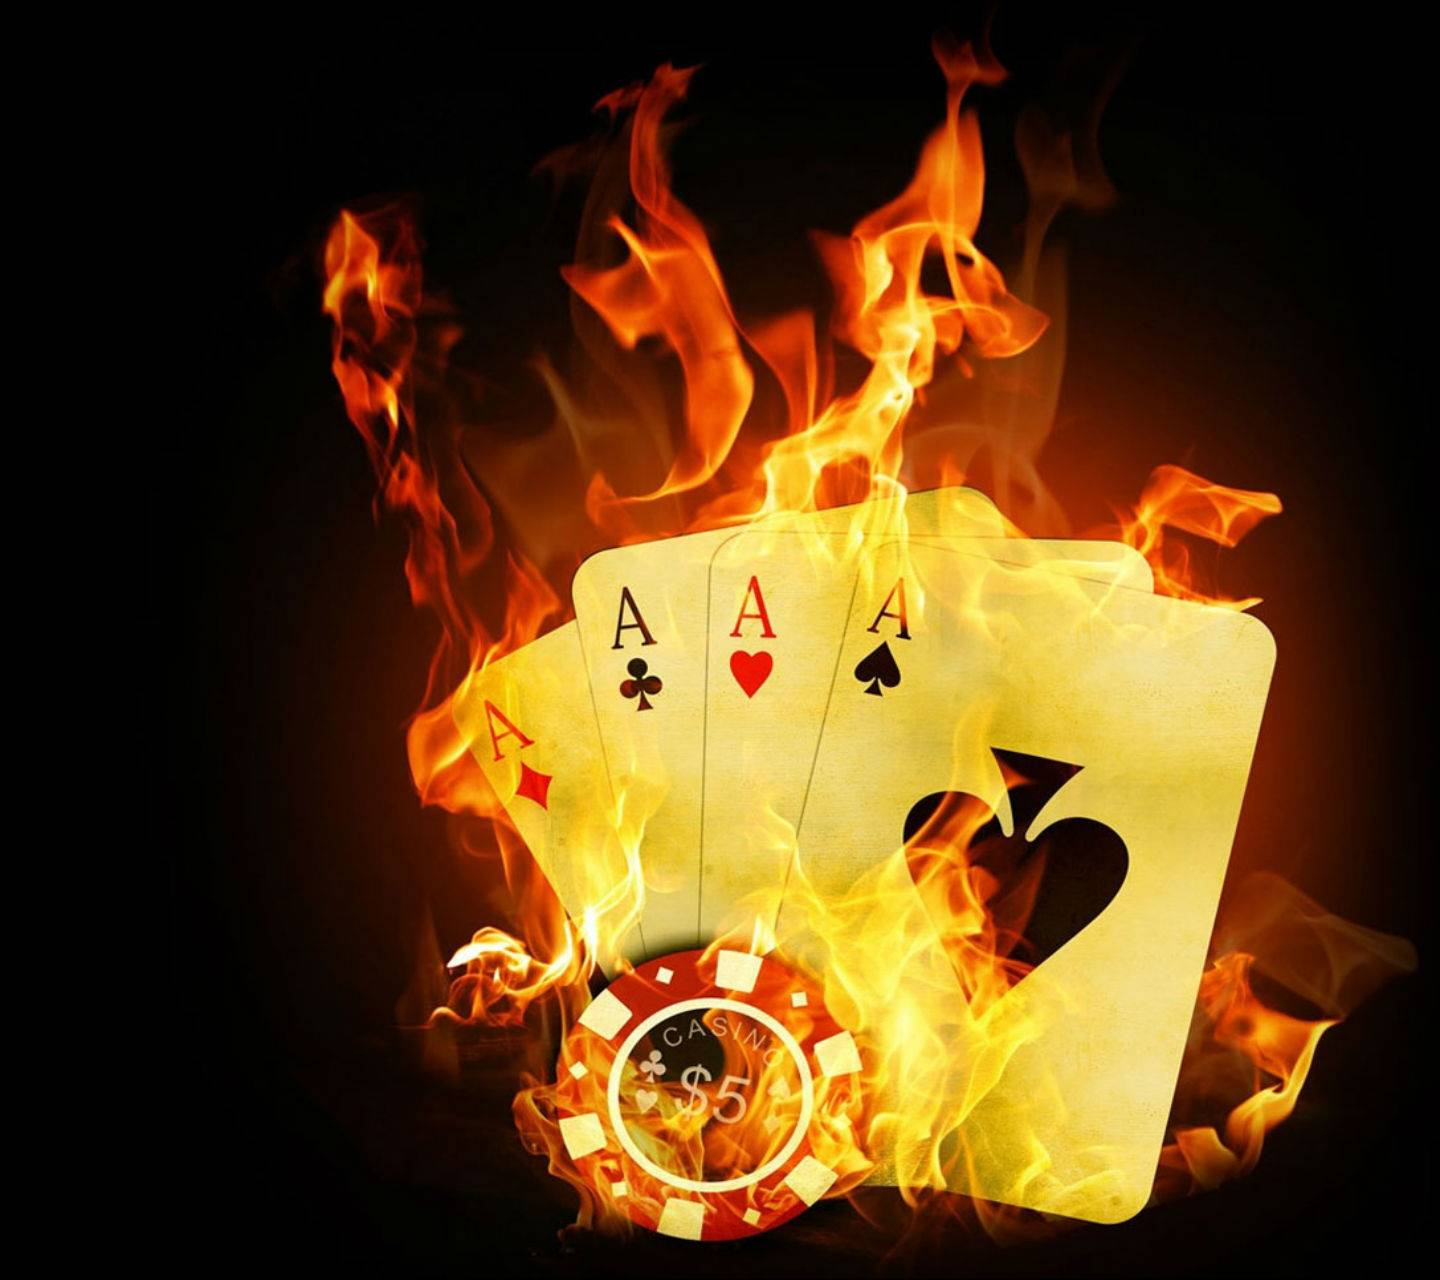 3d casino cards wallpaper__lov3abl3__ - be - free on zedge™